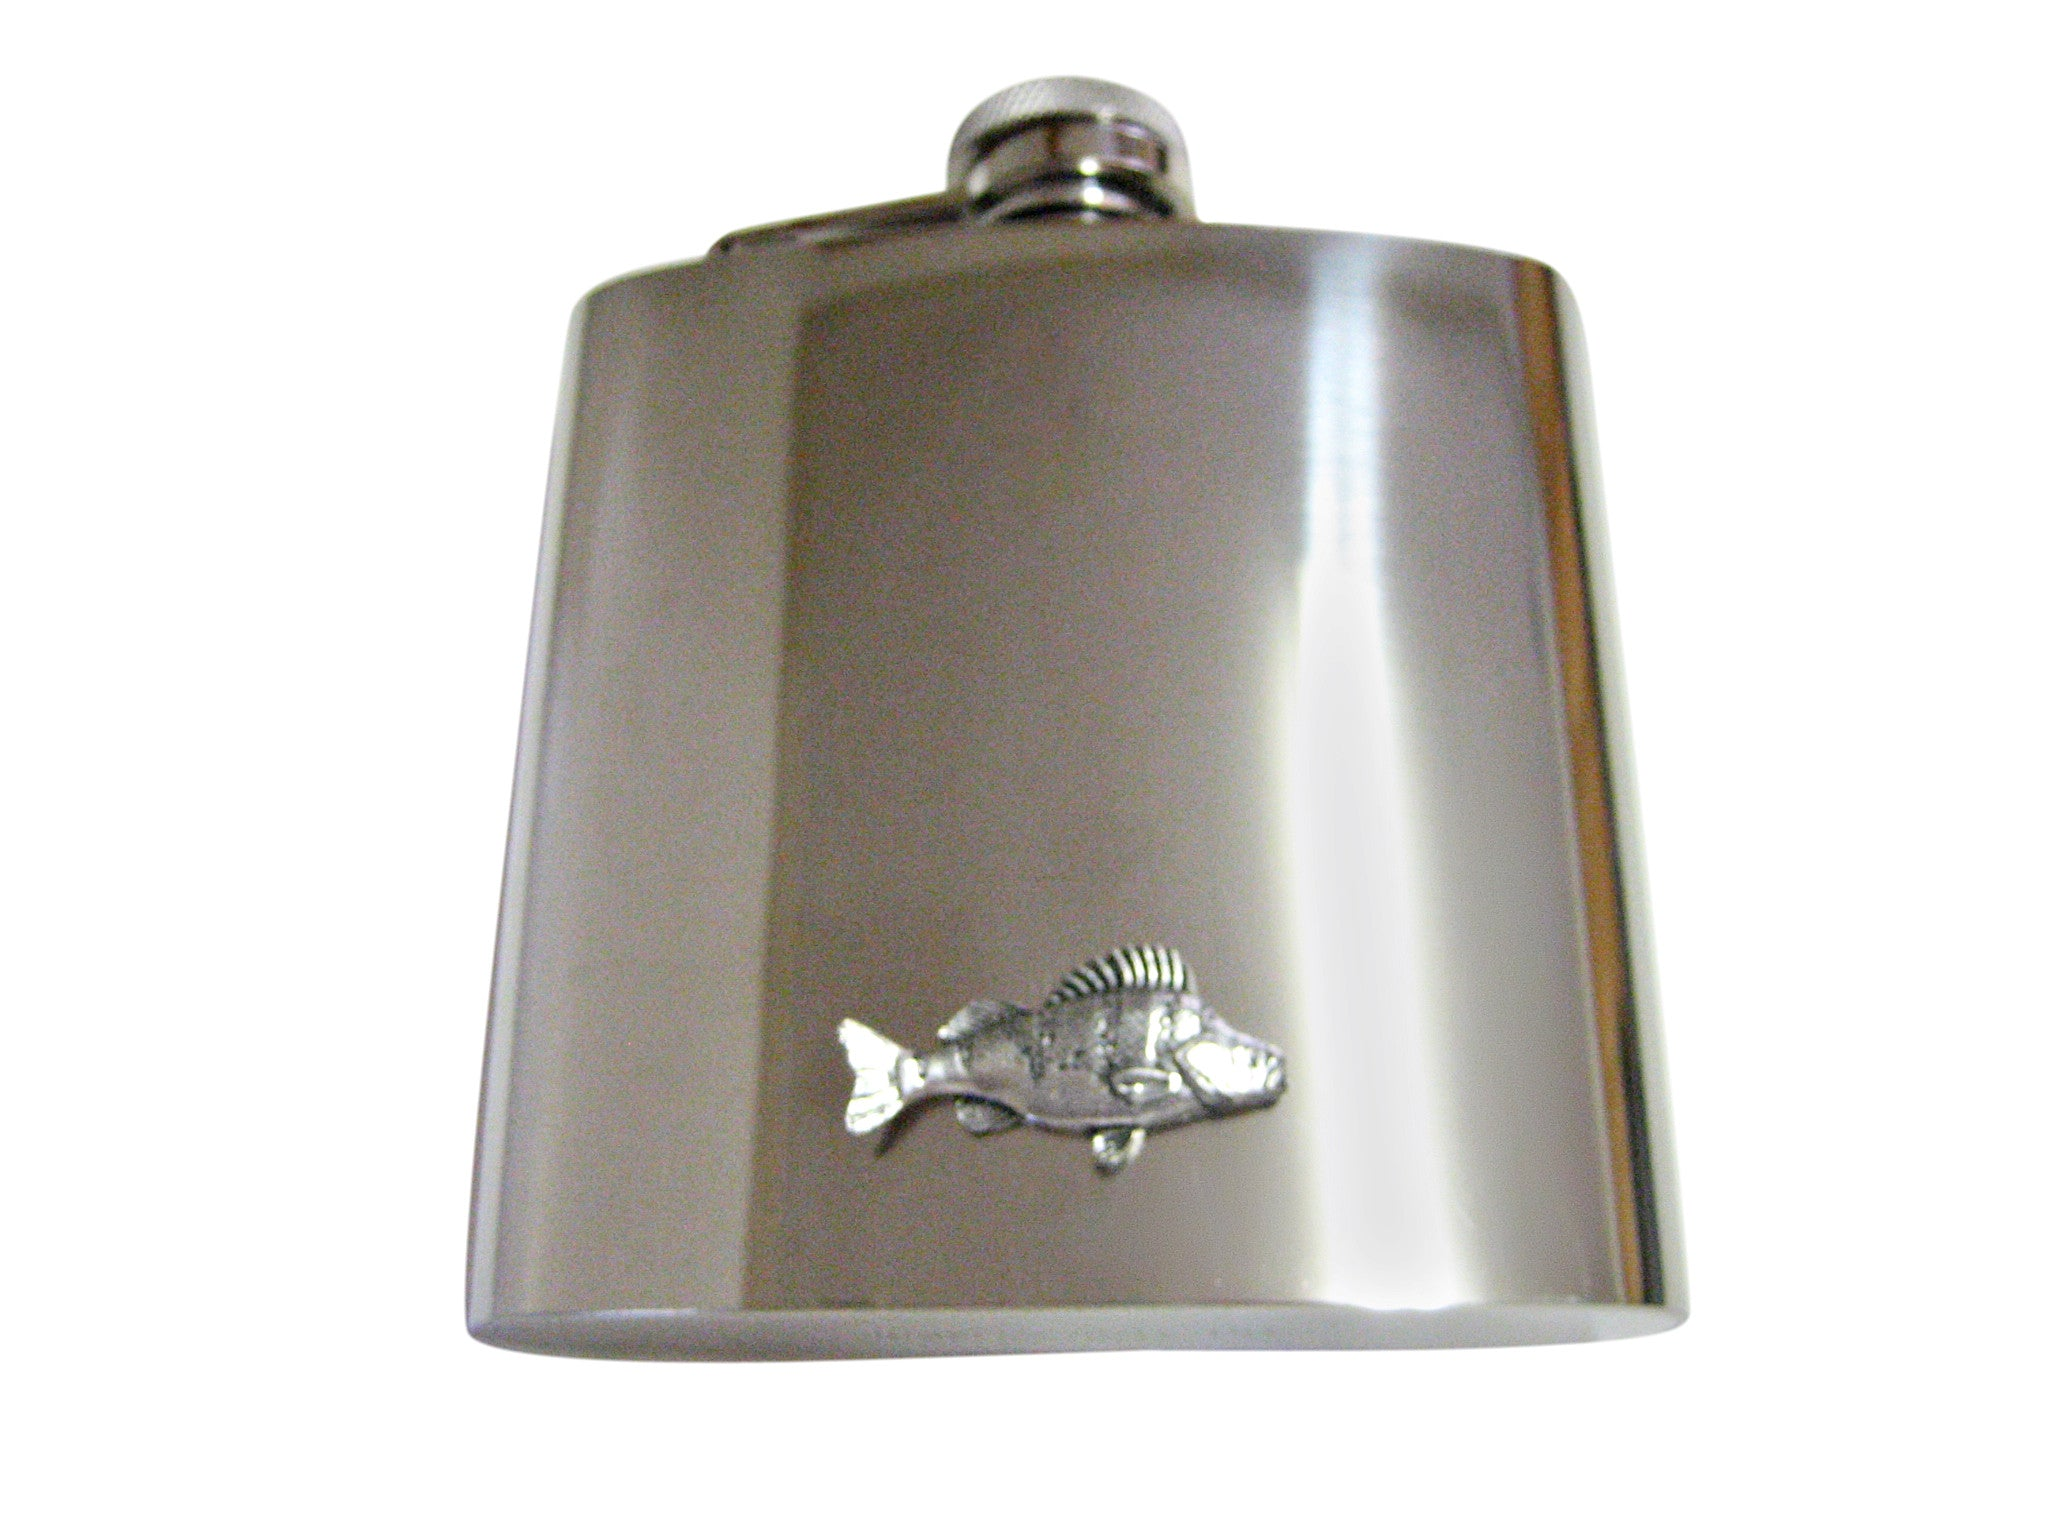 Perch Fish 6 Oz. Stainless Steel Flask